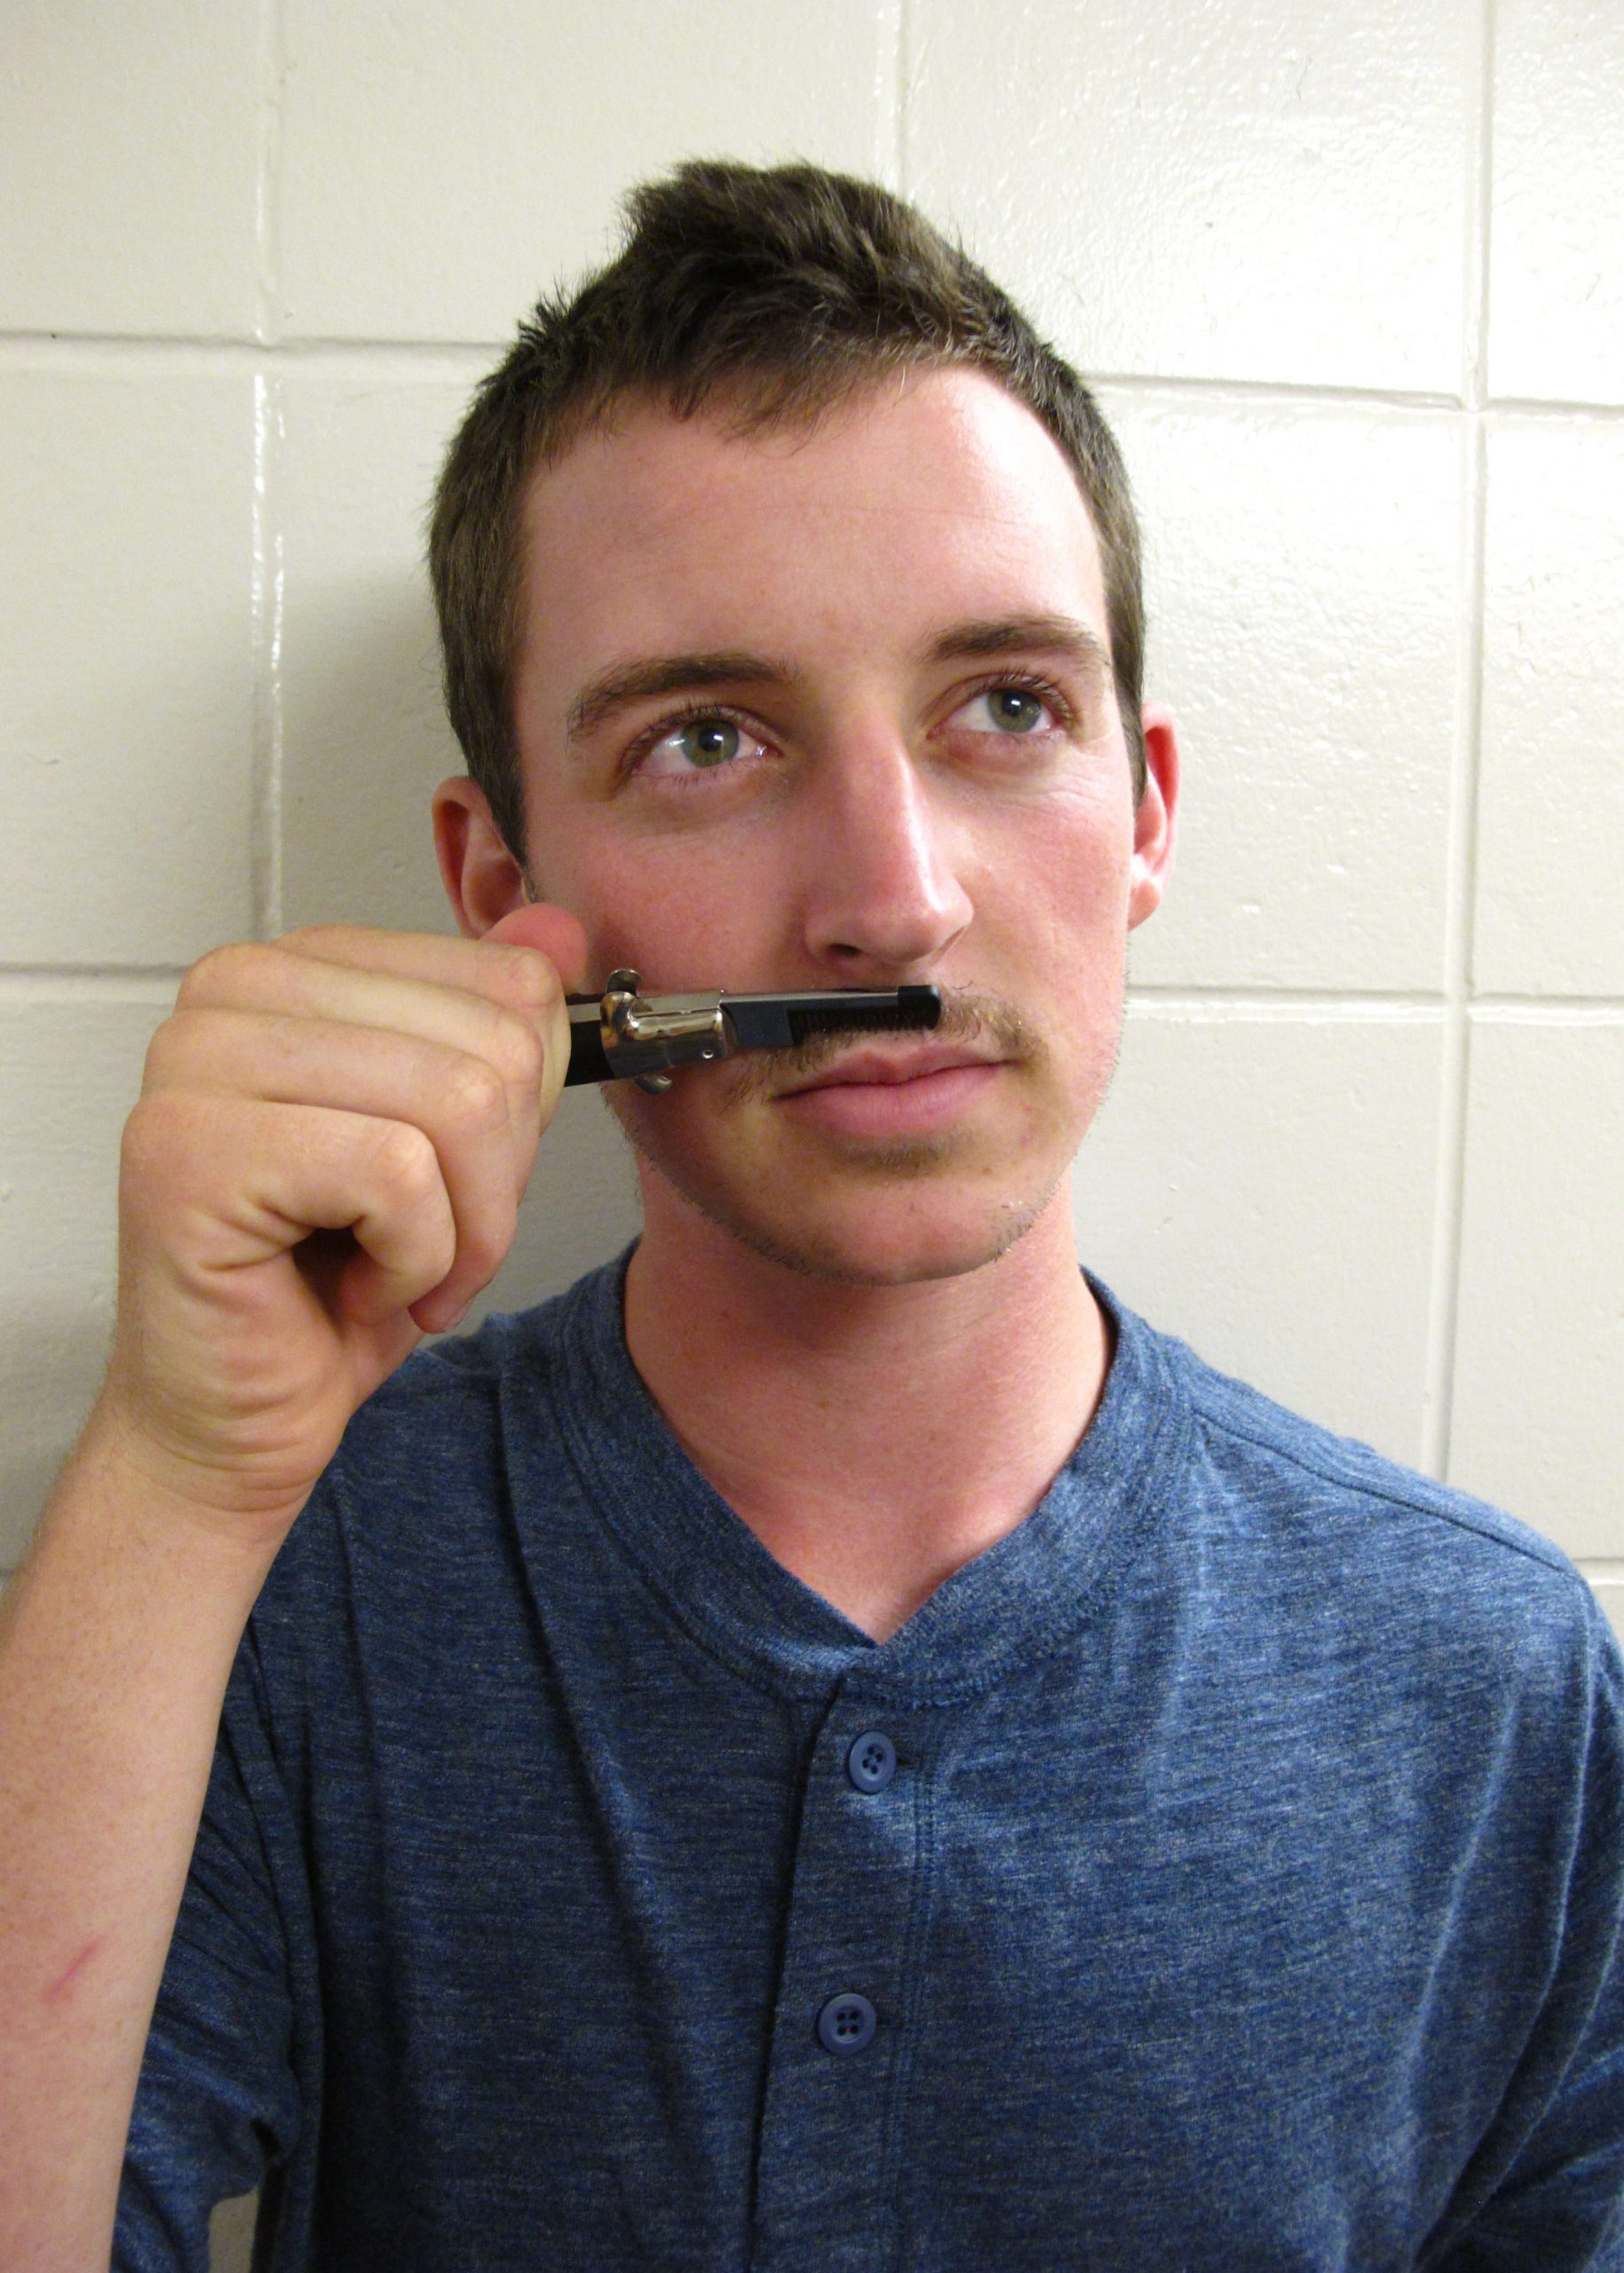 Jonathan Hershberger holds a clipper under his nose in place of a mustache